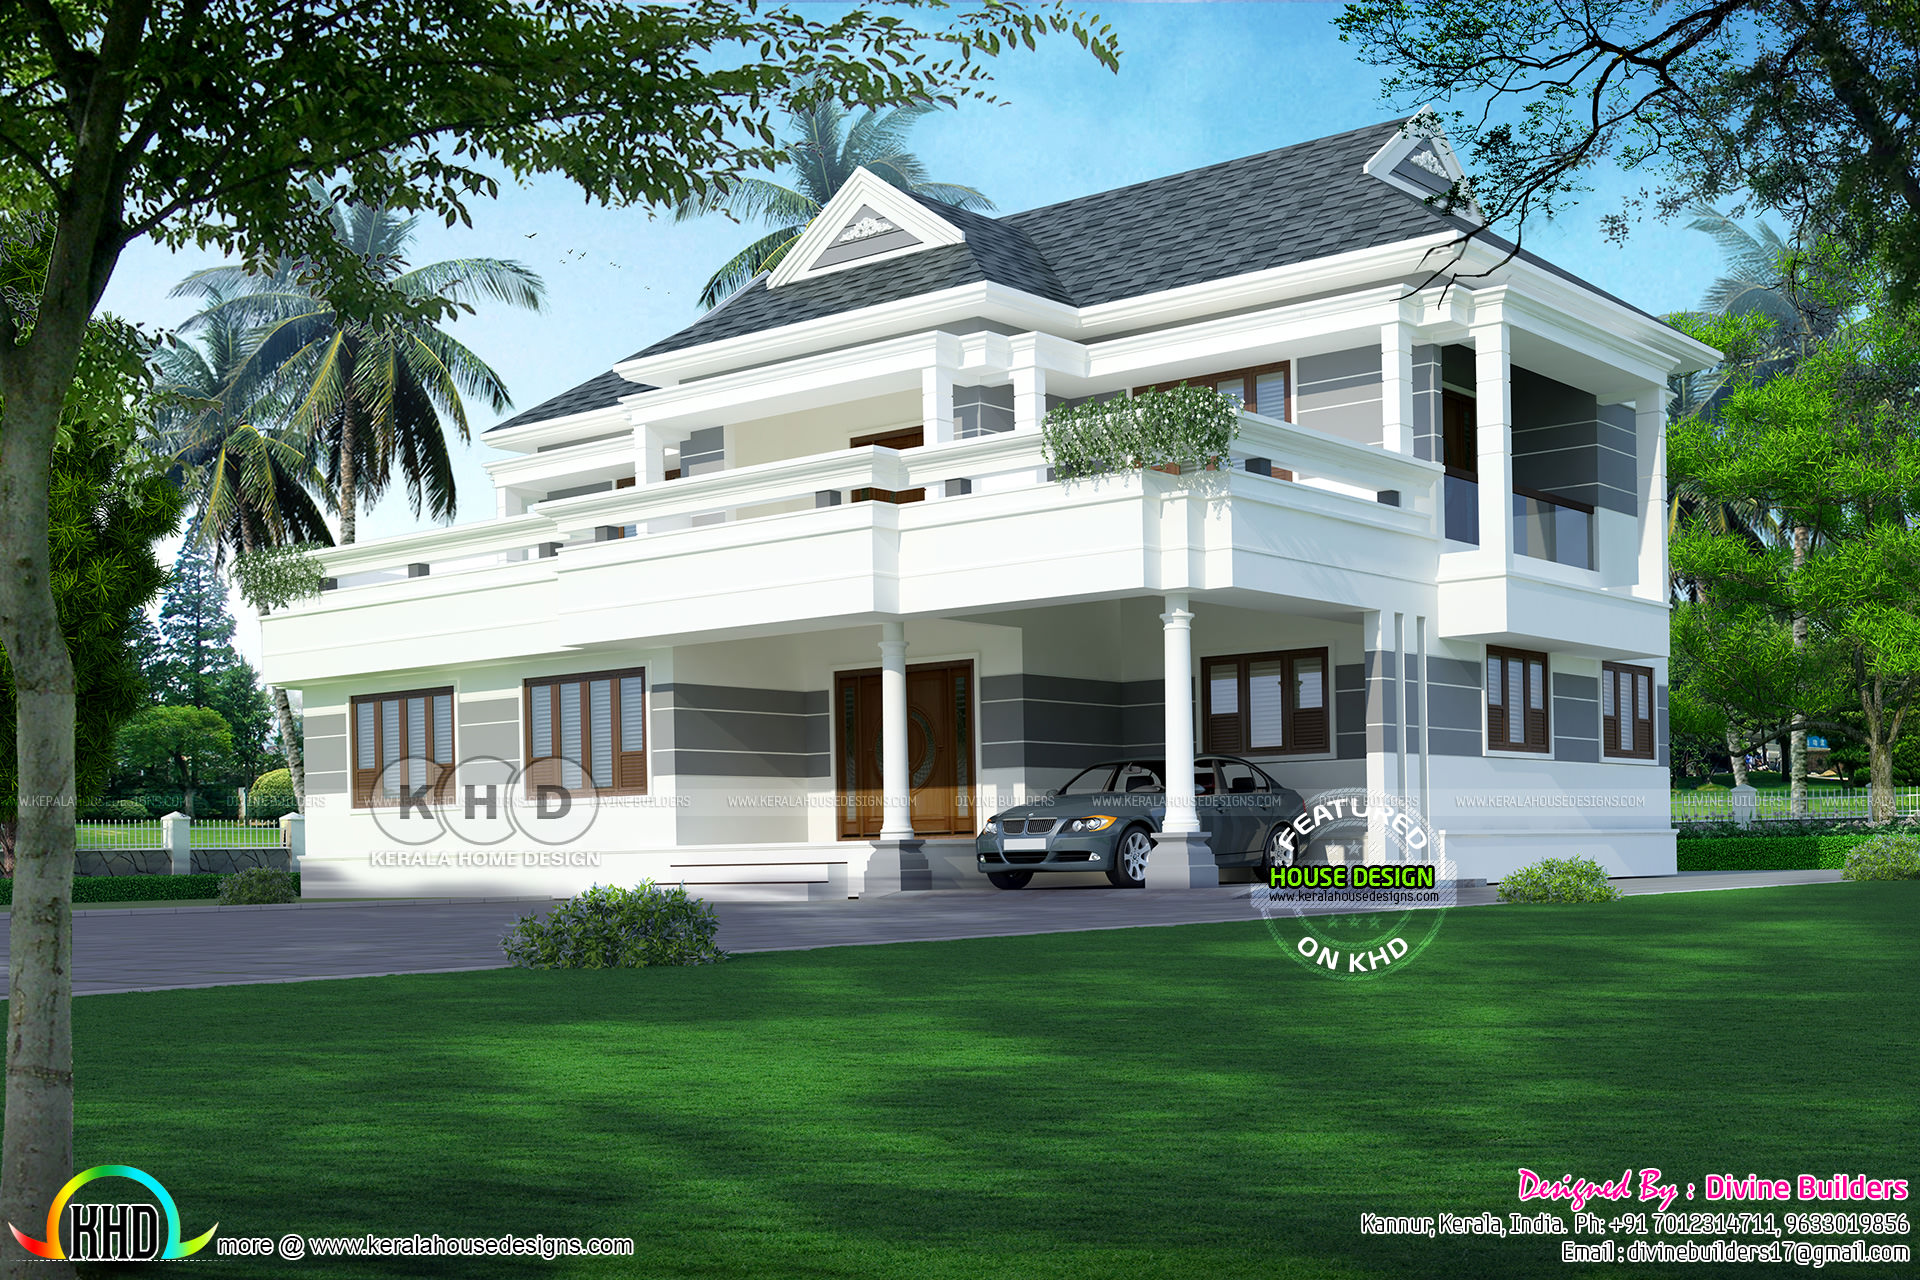 35 lakhs construction cost estimated home kerala home for Estimated cost of building a house